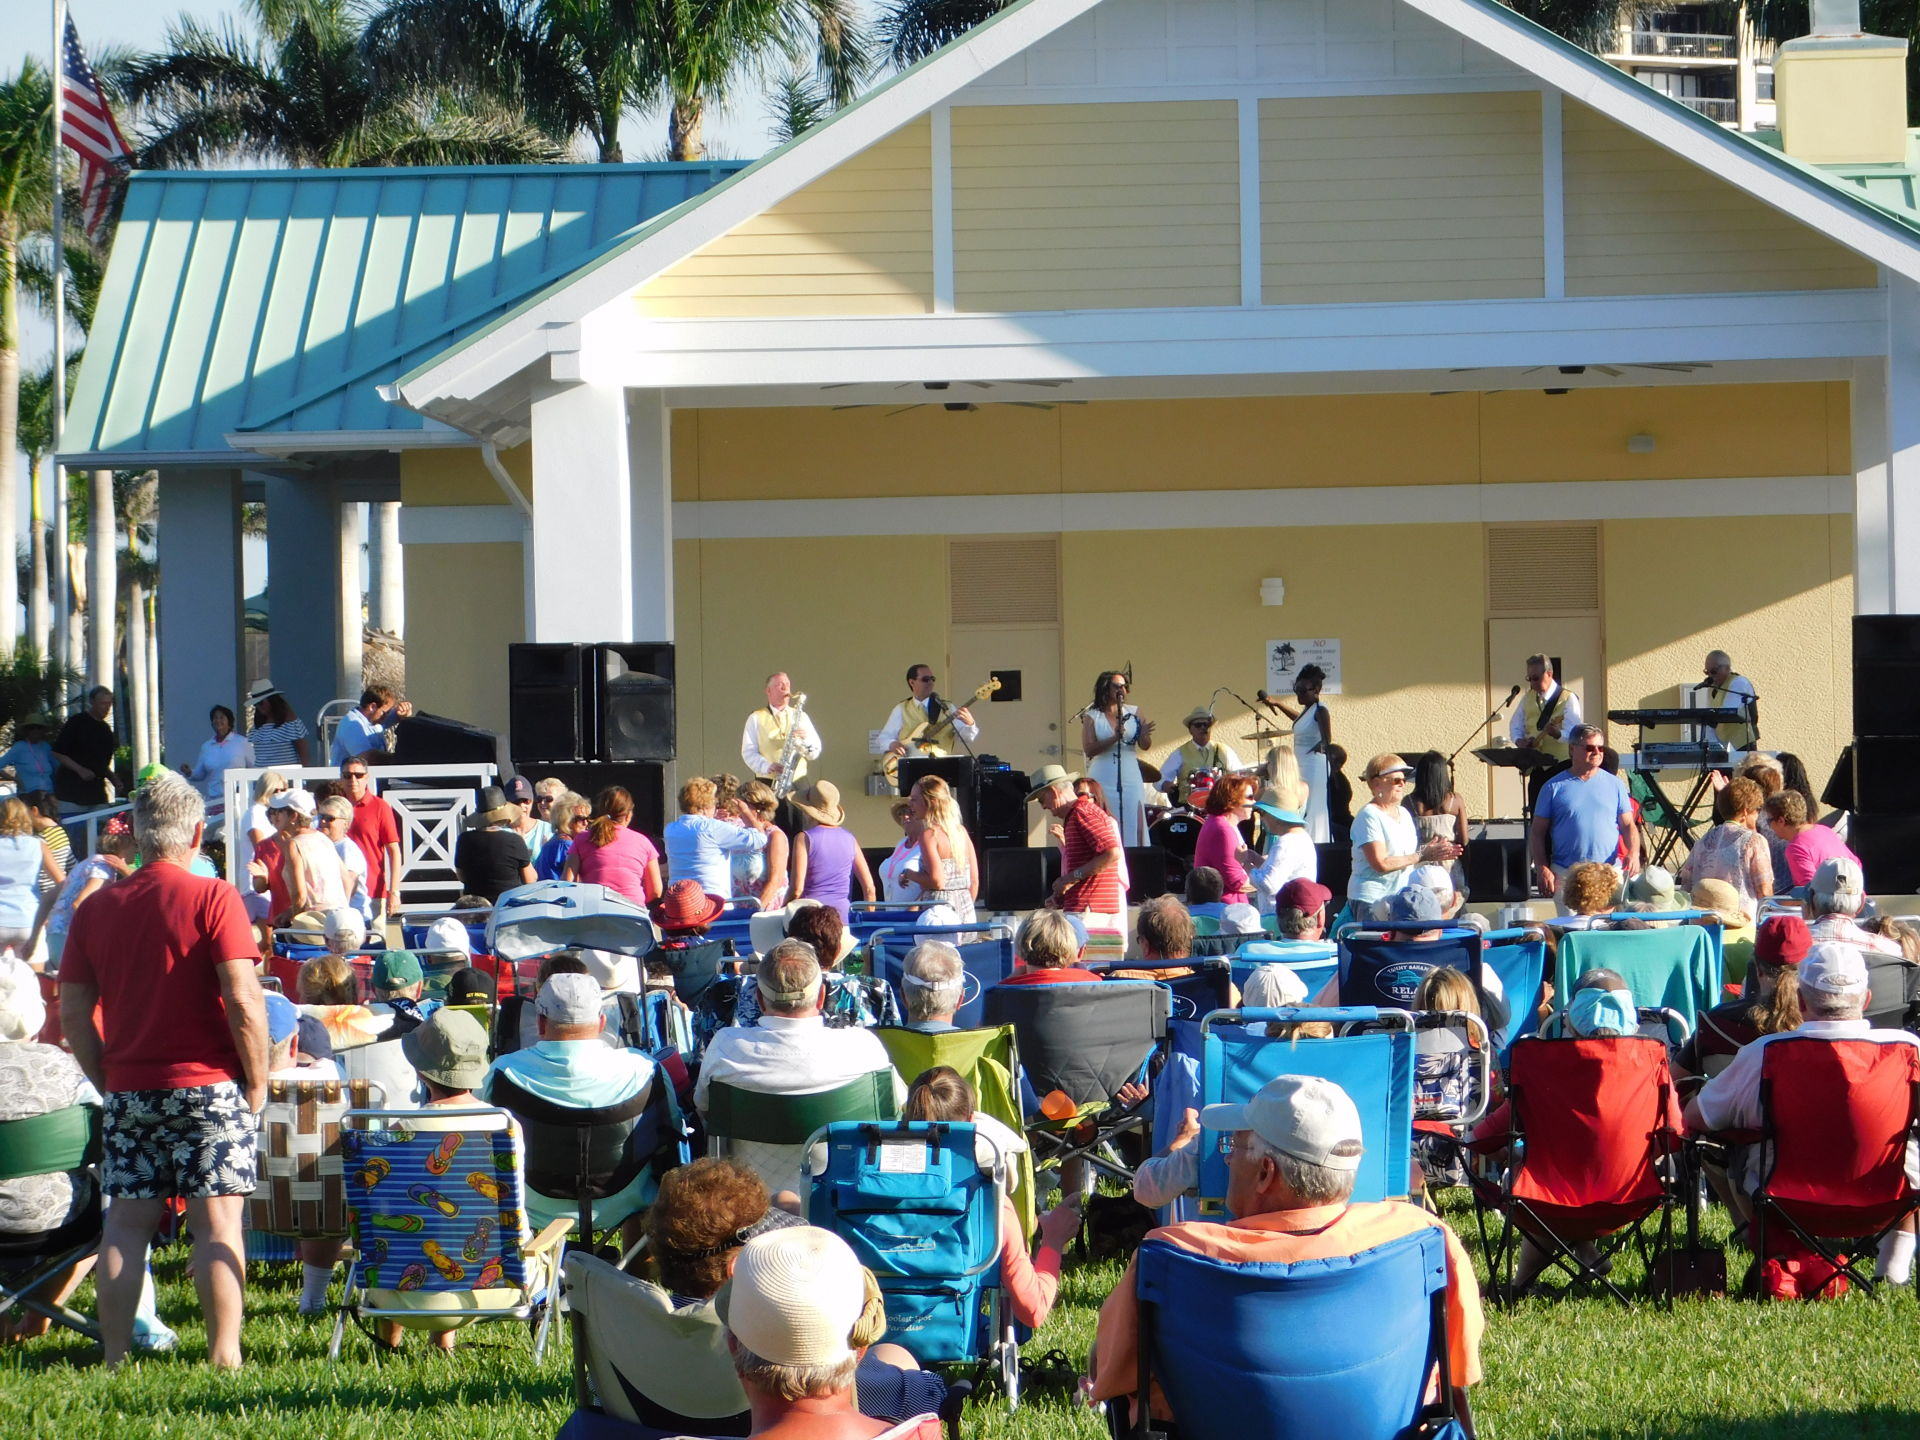 PACK YOUR COOLER AND PICNIC FOR THE FREE CONCERTS AT RESIDENTS BEACH